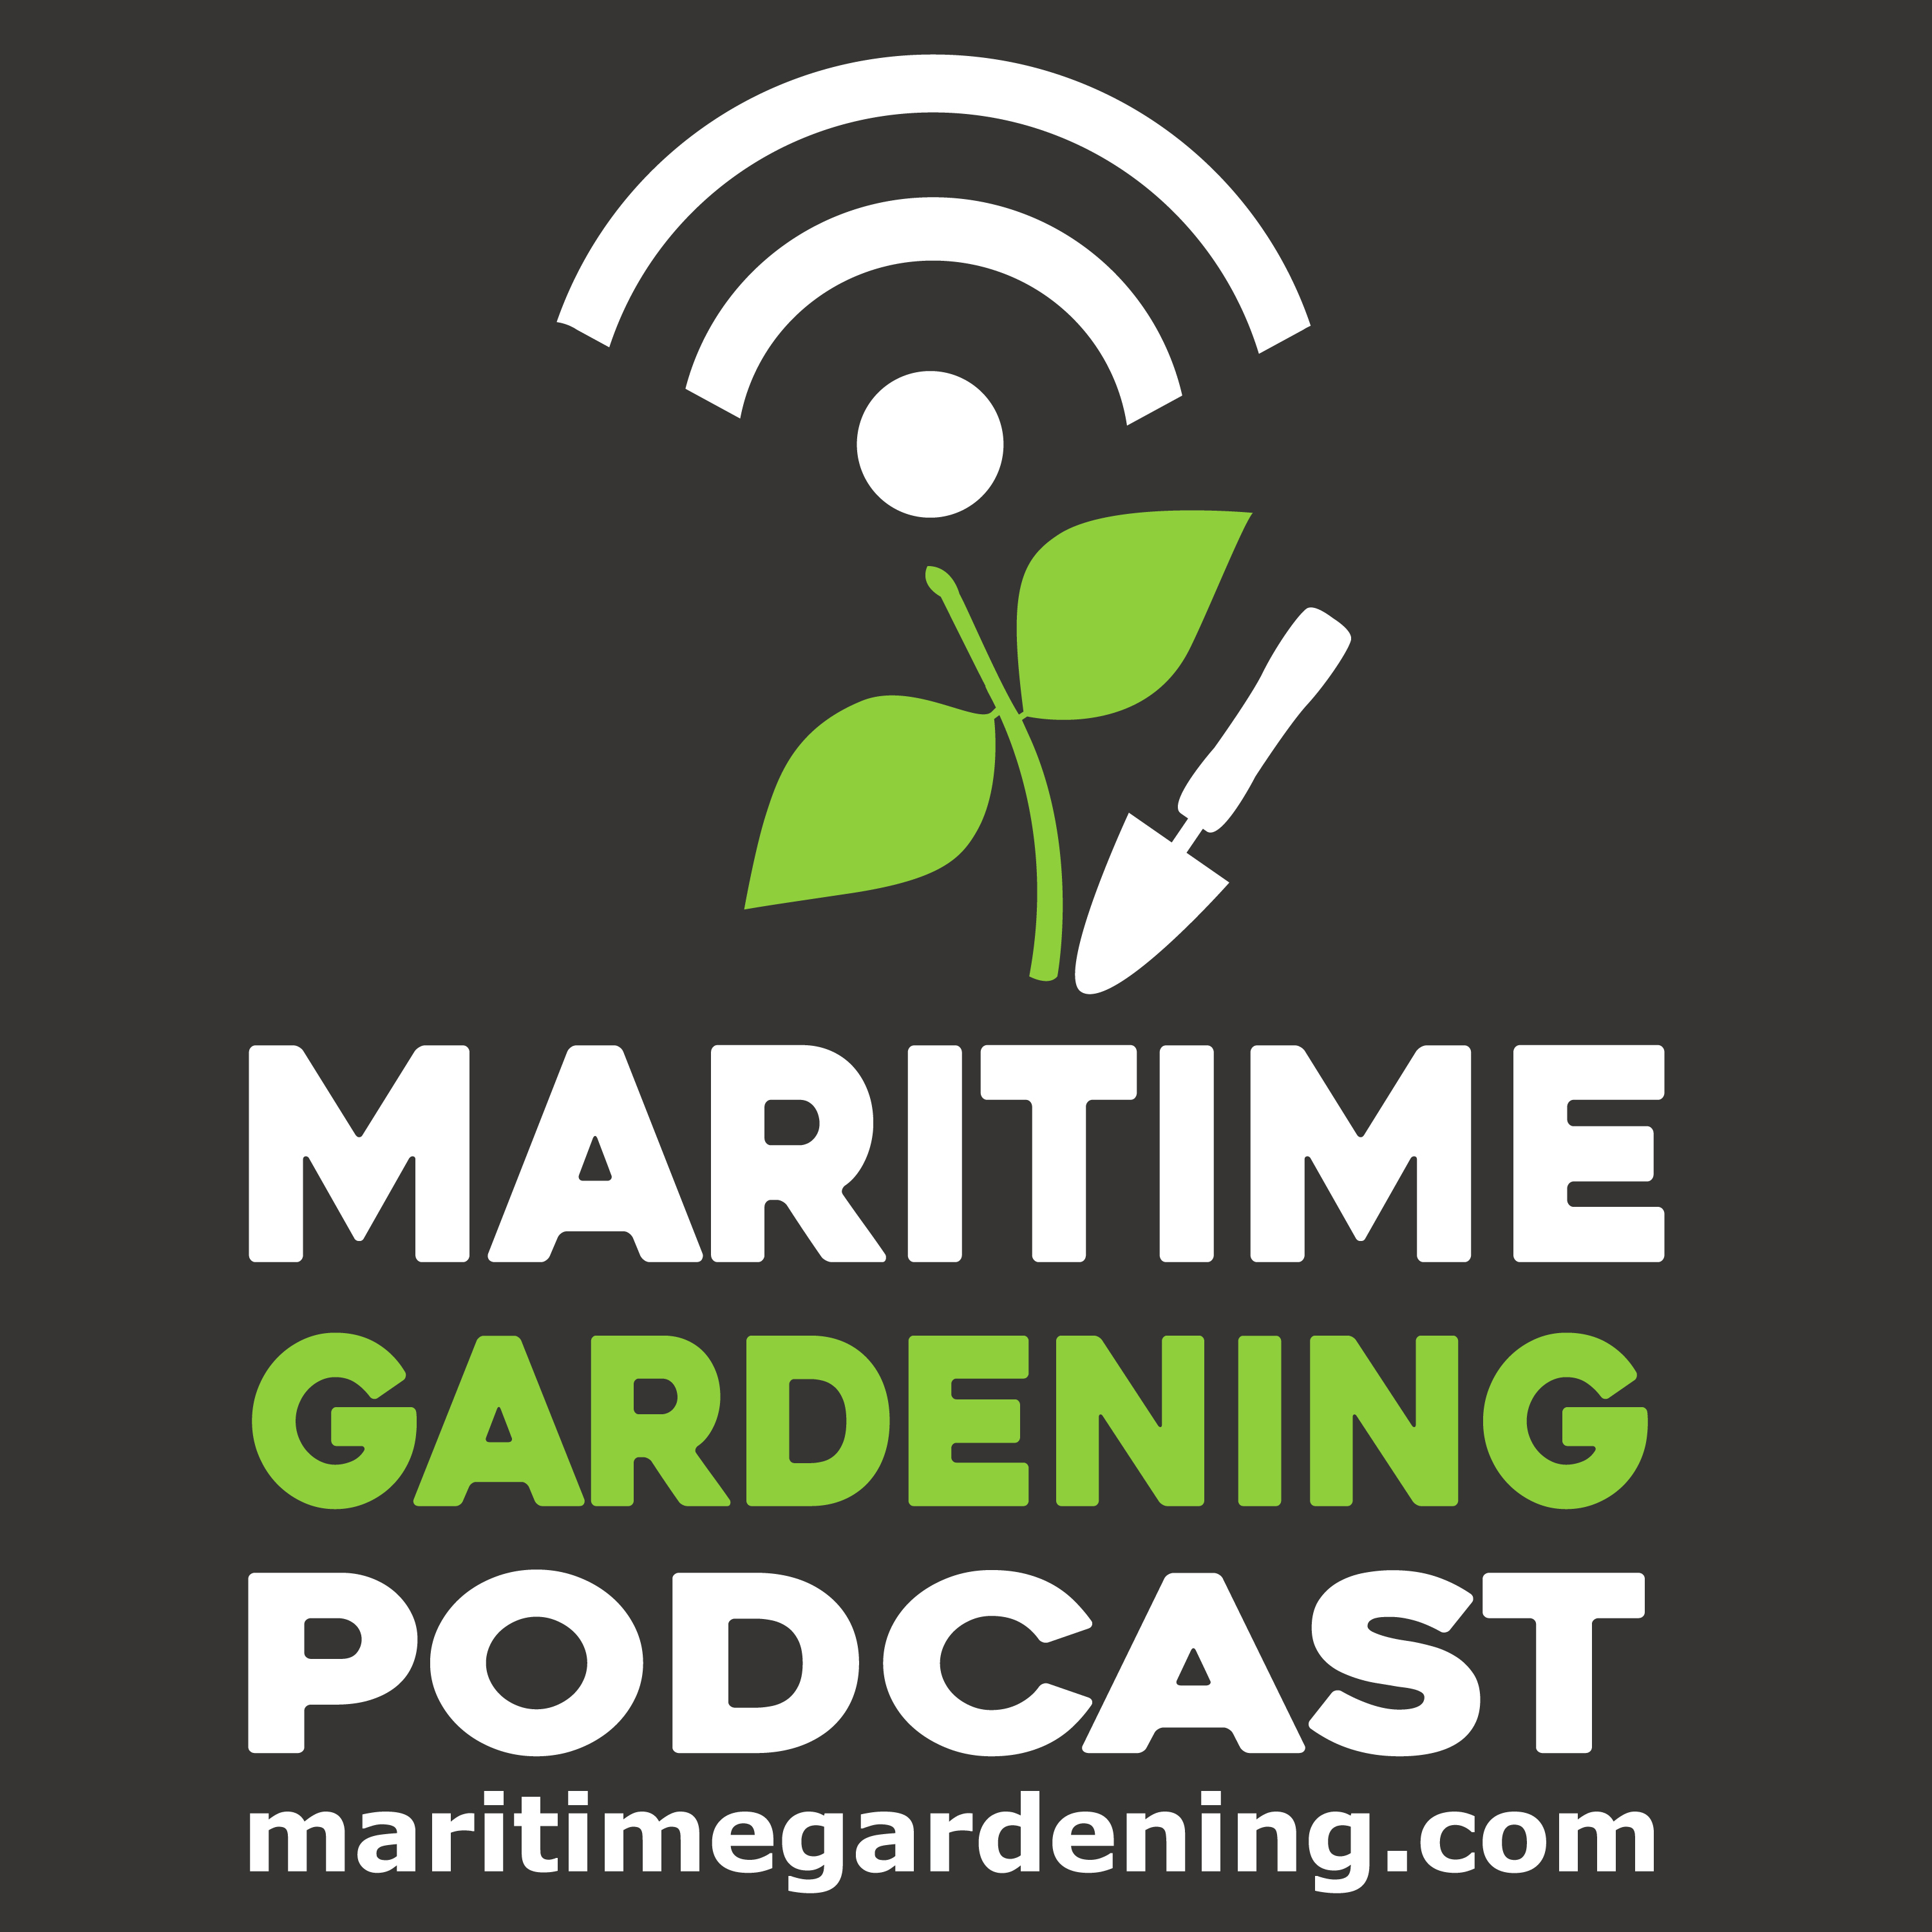 The Maritime Gardening Podcast